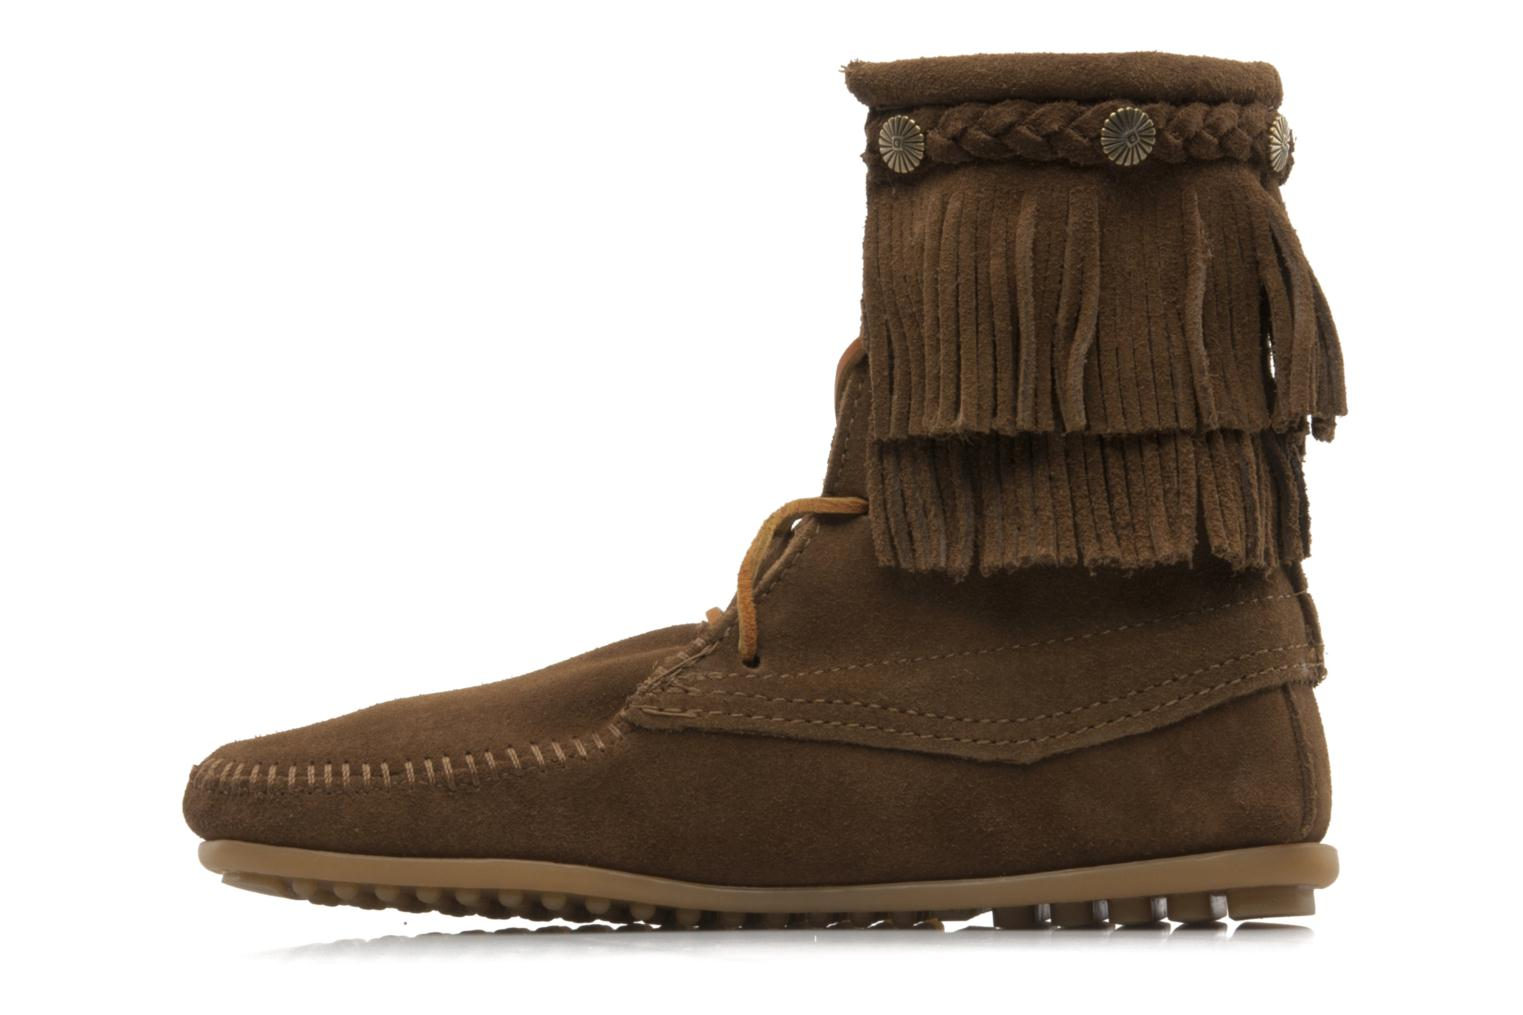 Bottines et boots Minnetonka DOUBLE FRINGE TRAMPER Marron vue face